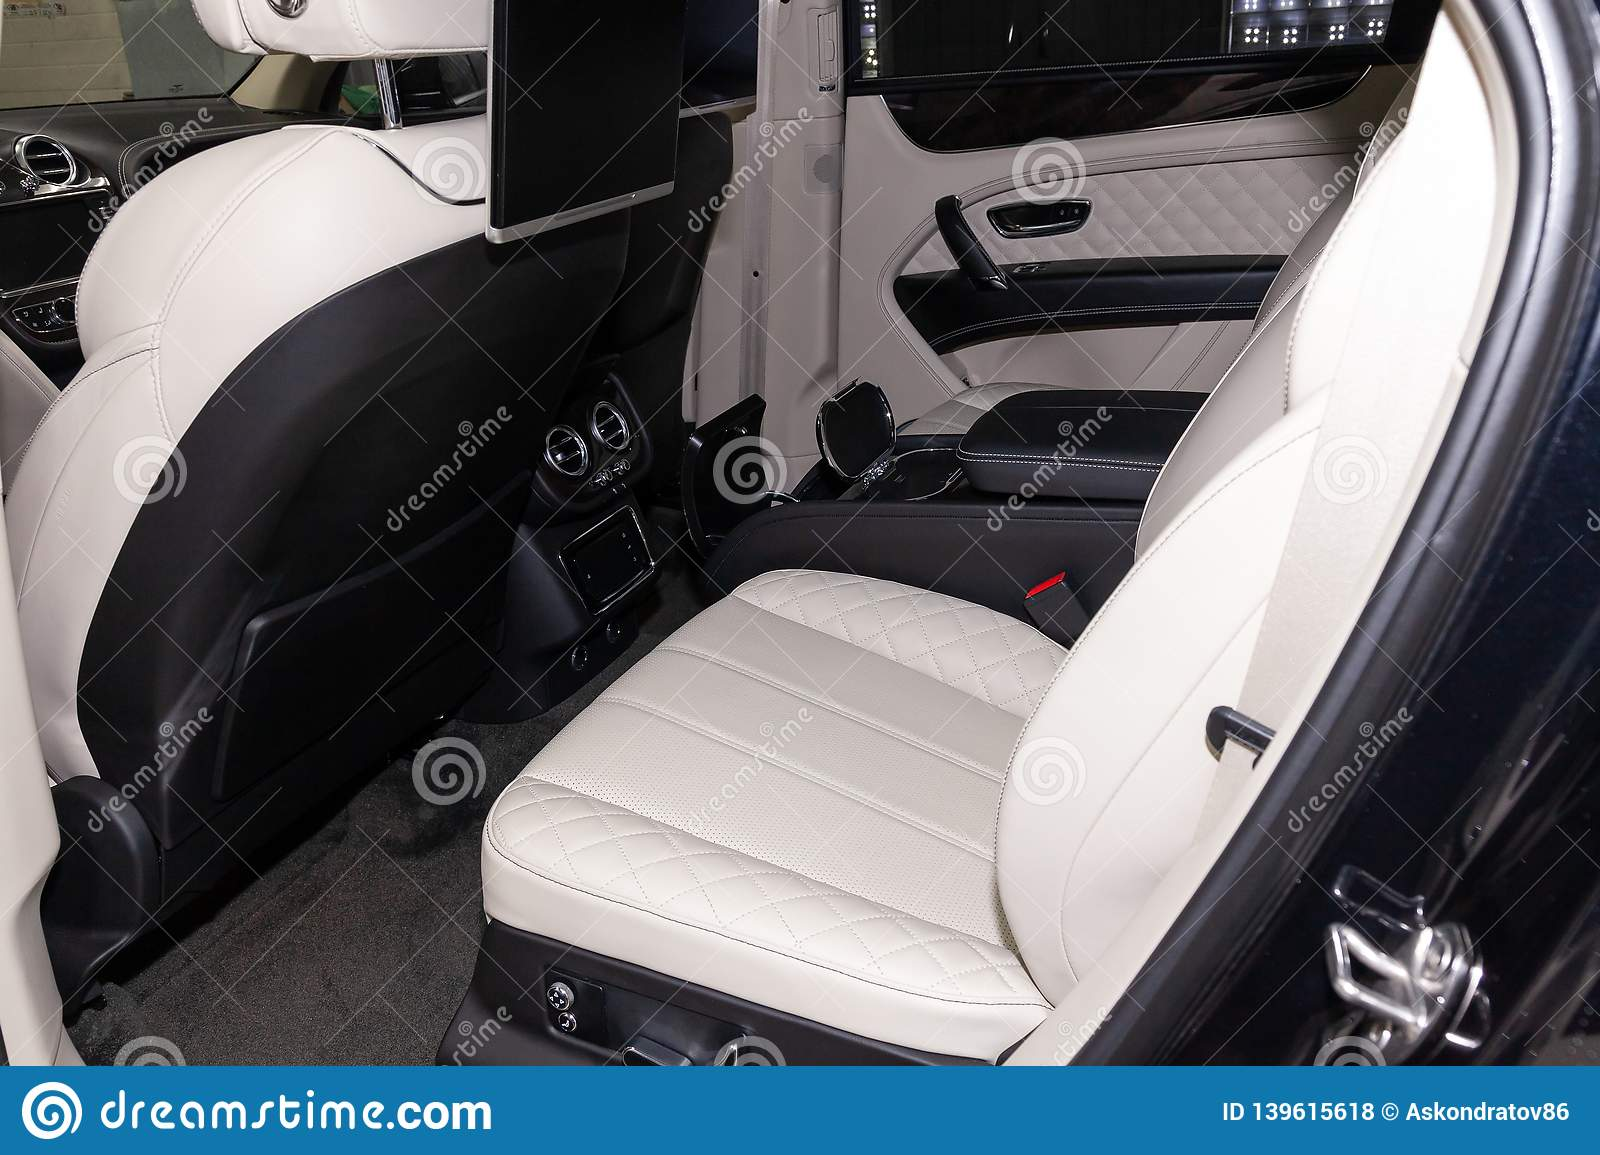 Interior View With Rear Seats Of Luxury Very Expensive New Black Bentley Bentayga Car Stands In The Washing Box Waiting For Repair Editorial Stock Photo Image Of Dashboard Clock 139615618